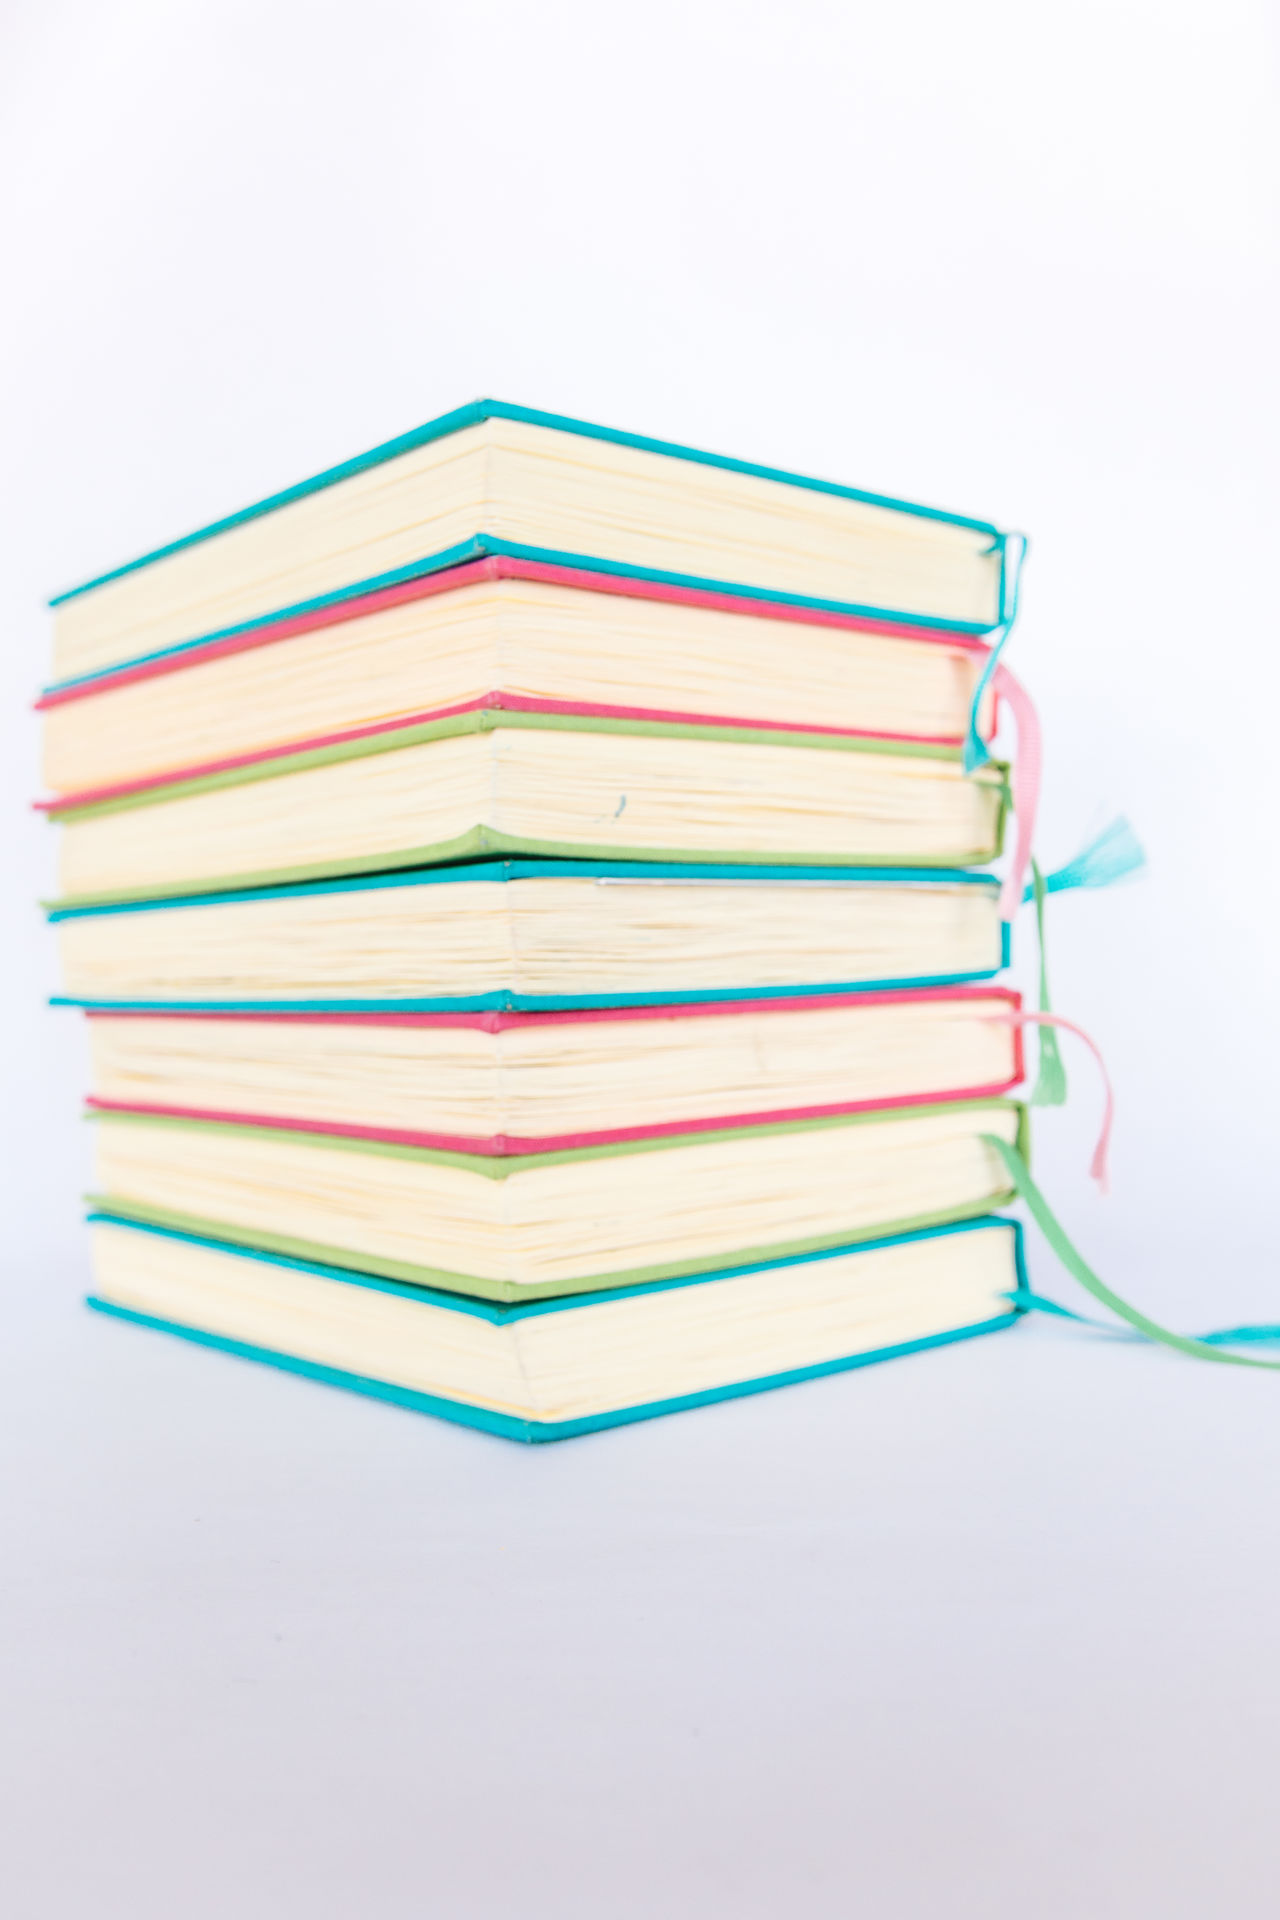 Colorful Books Blue Books Close-up Colorful Colors Cyan Education Educational Green Learning LearningEveryday Multi Colored No People Paper Pink Reading Reading Books Reading Time Stack Study Hard Study Time Studying White Background